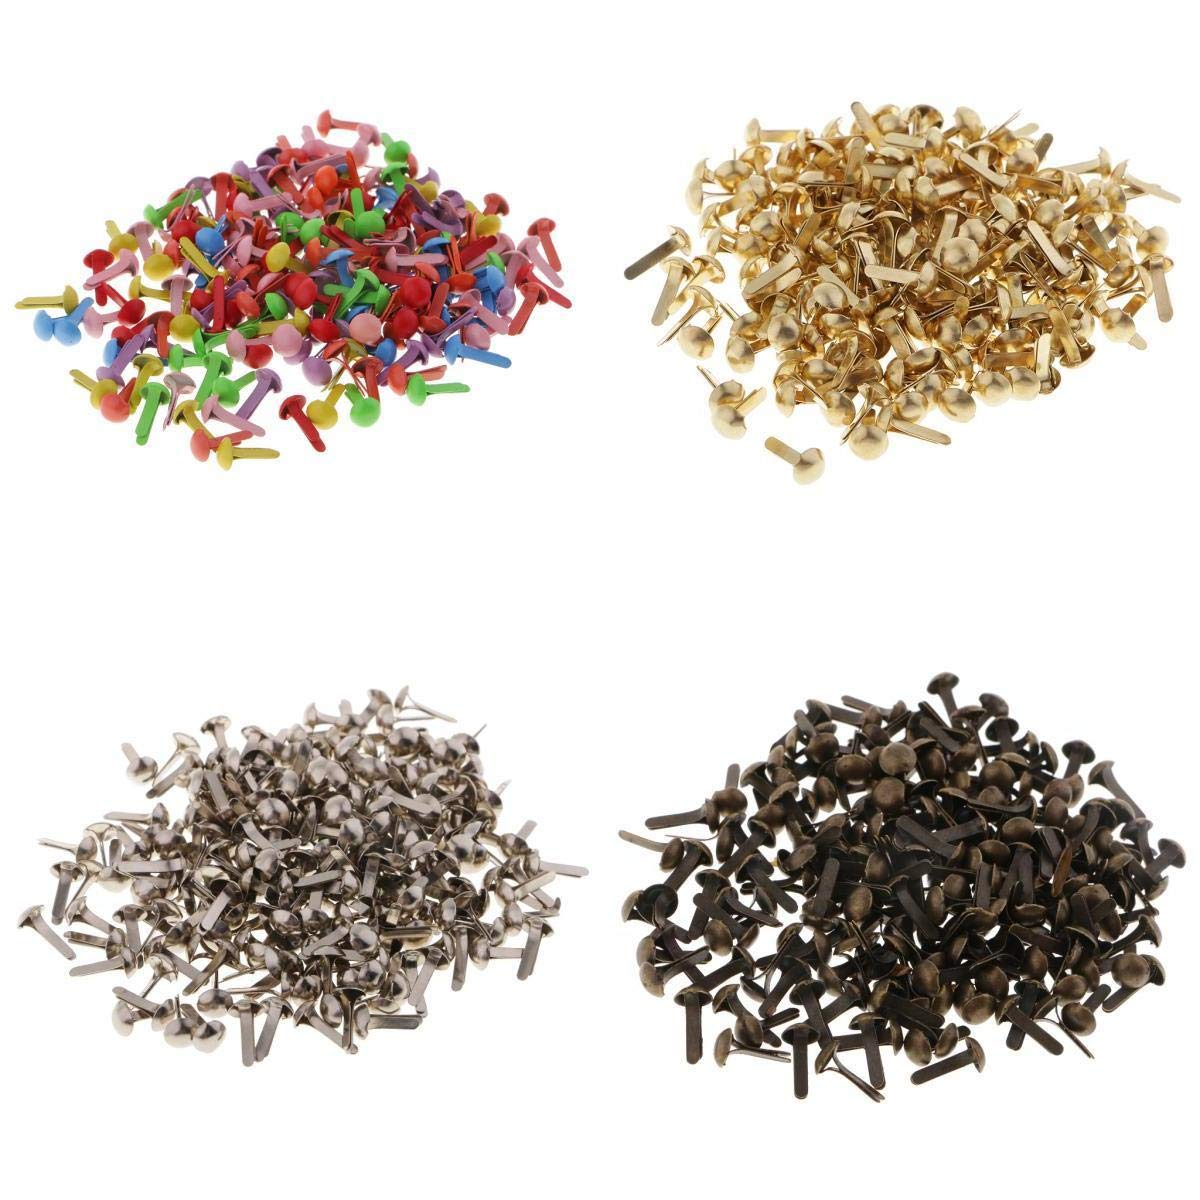 Computer accessories - 800pcs Mini Decorative Round Head Split Pins Metal Brads Paper Fasteners for Scrapbooking Paper Craft Office Stationery by trang tri